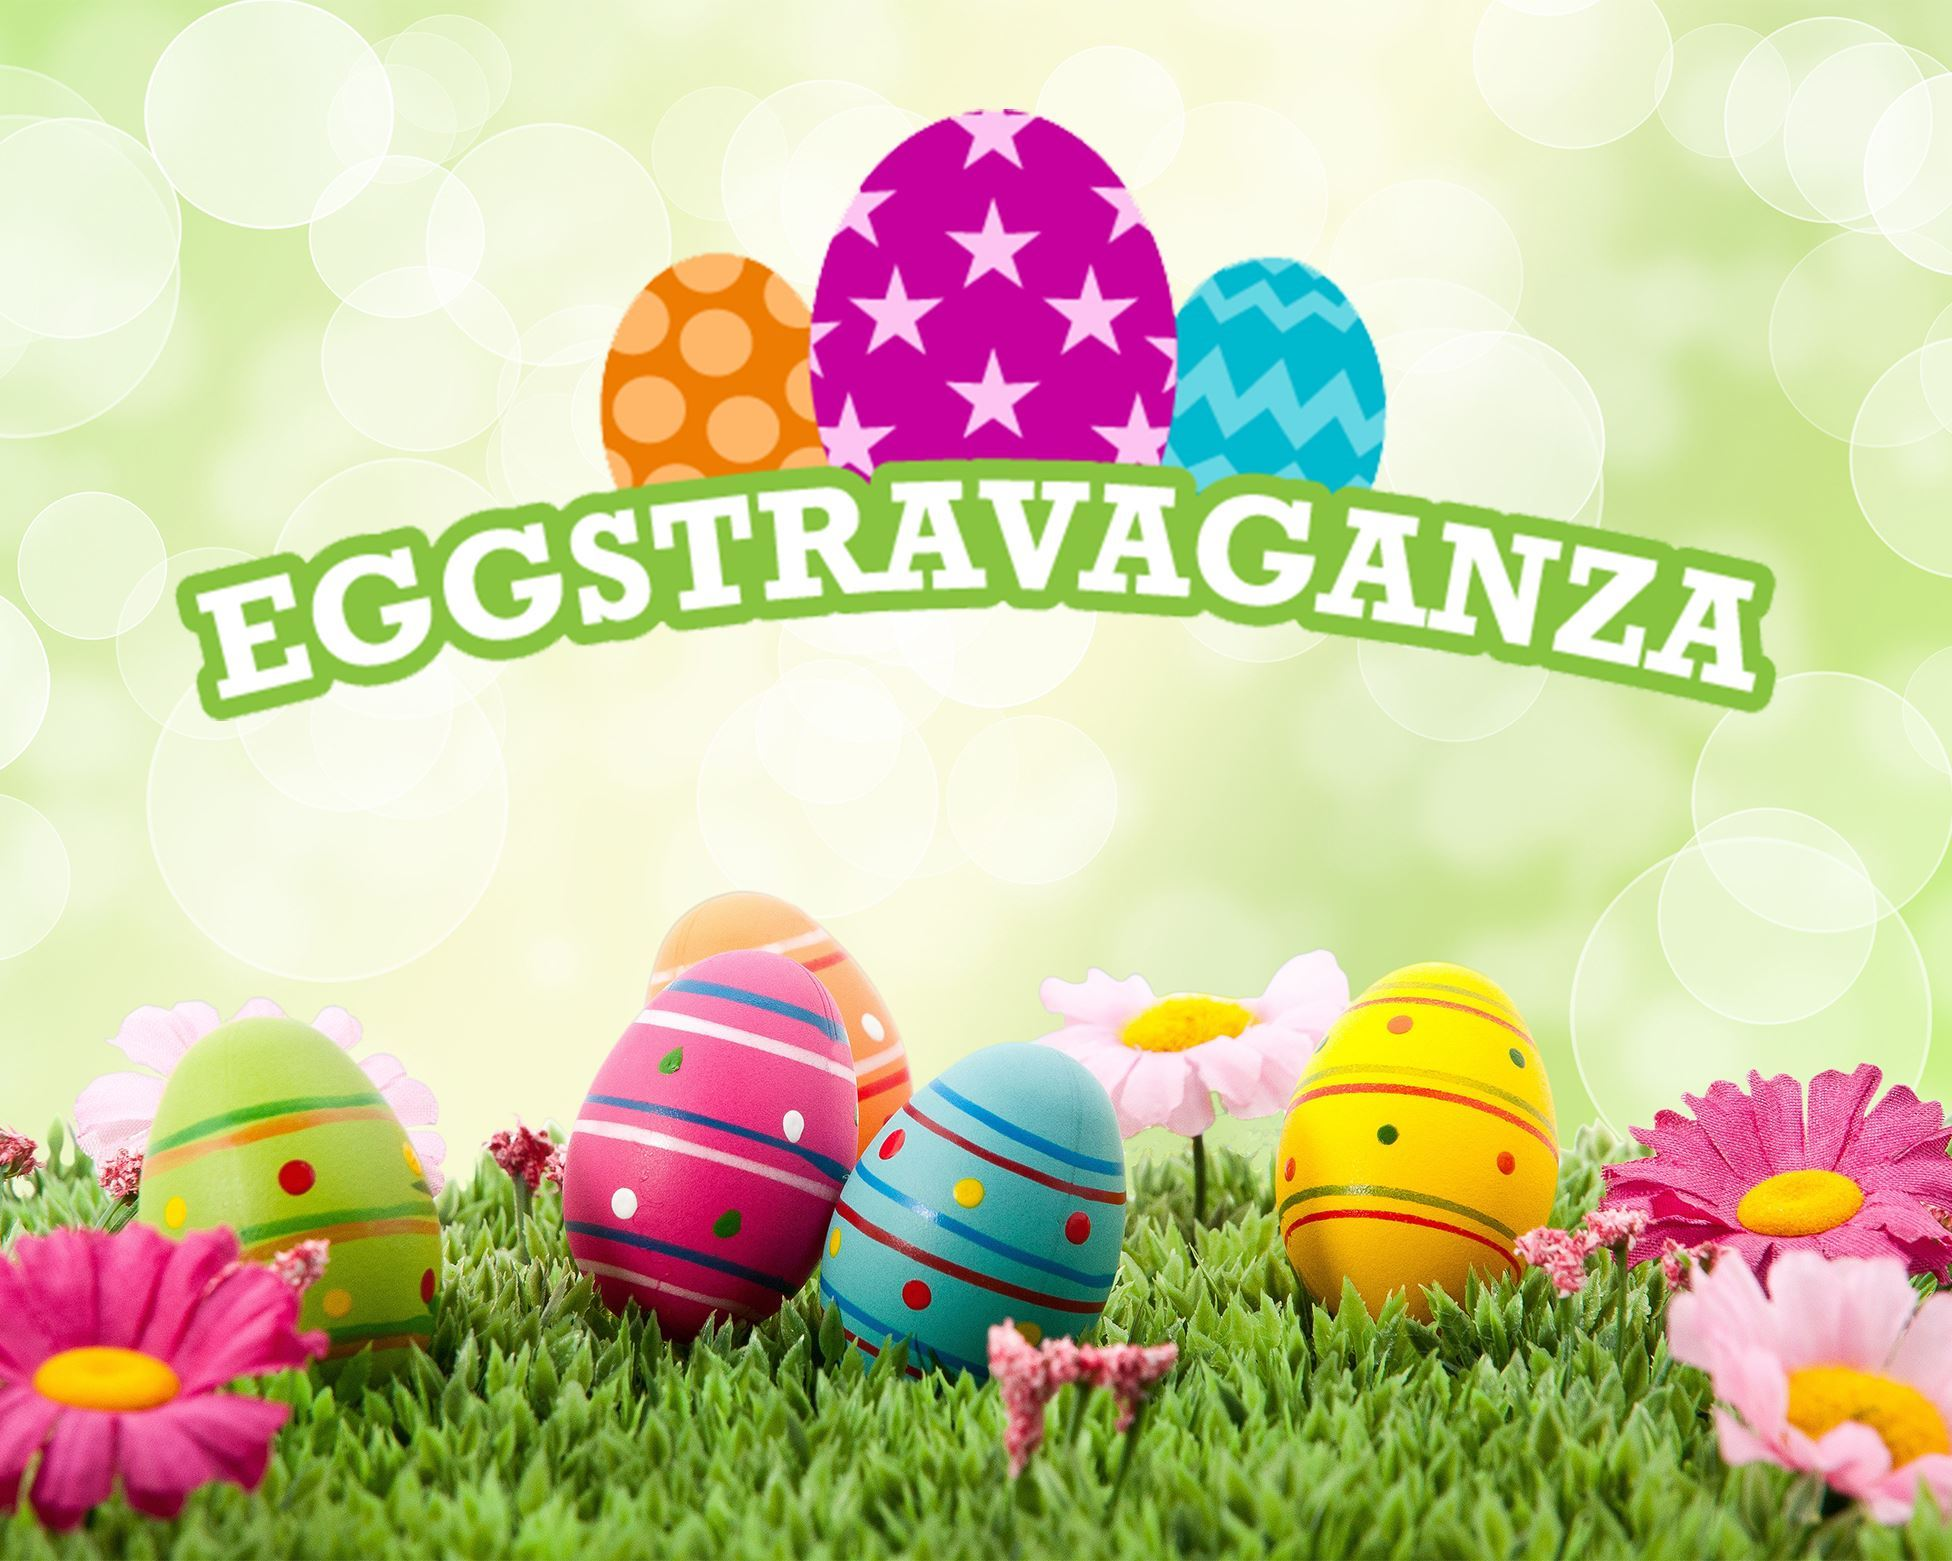 Eggstravaganza with image of colored eggs